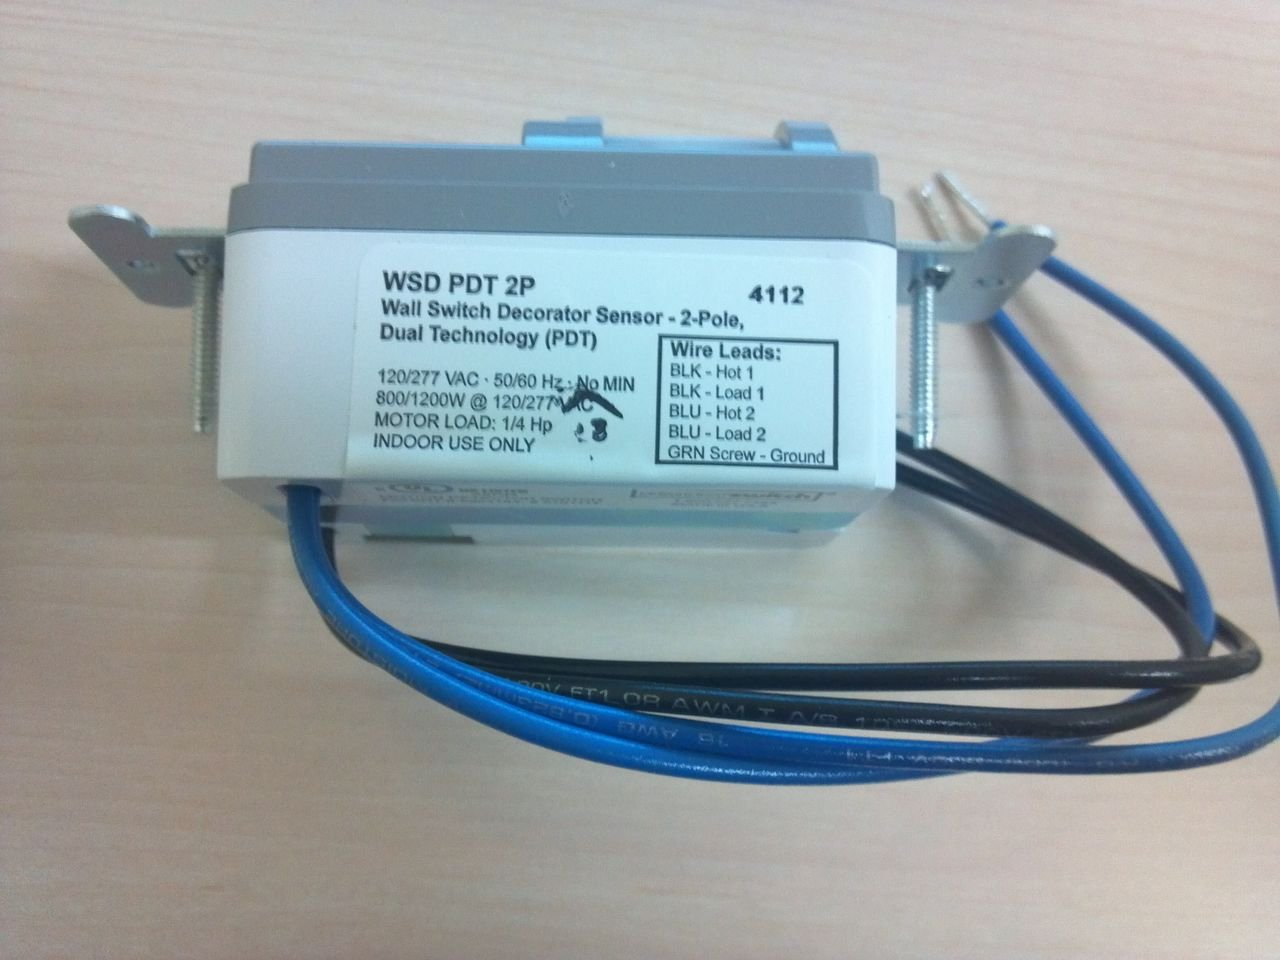 Sensor Switch WSD PDT 2P GY GRAY LINE VOLTAGE • 2-POLE • DUAL TECHNOLOGY (PDT) WSD2PWH WSD-PDT-2P-GY by Sensor Switch (Image #3)